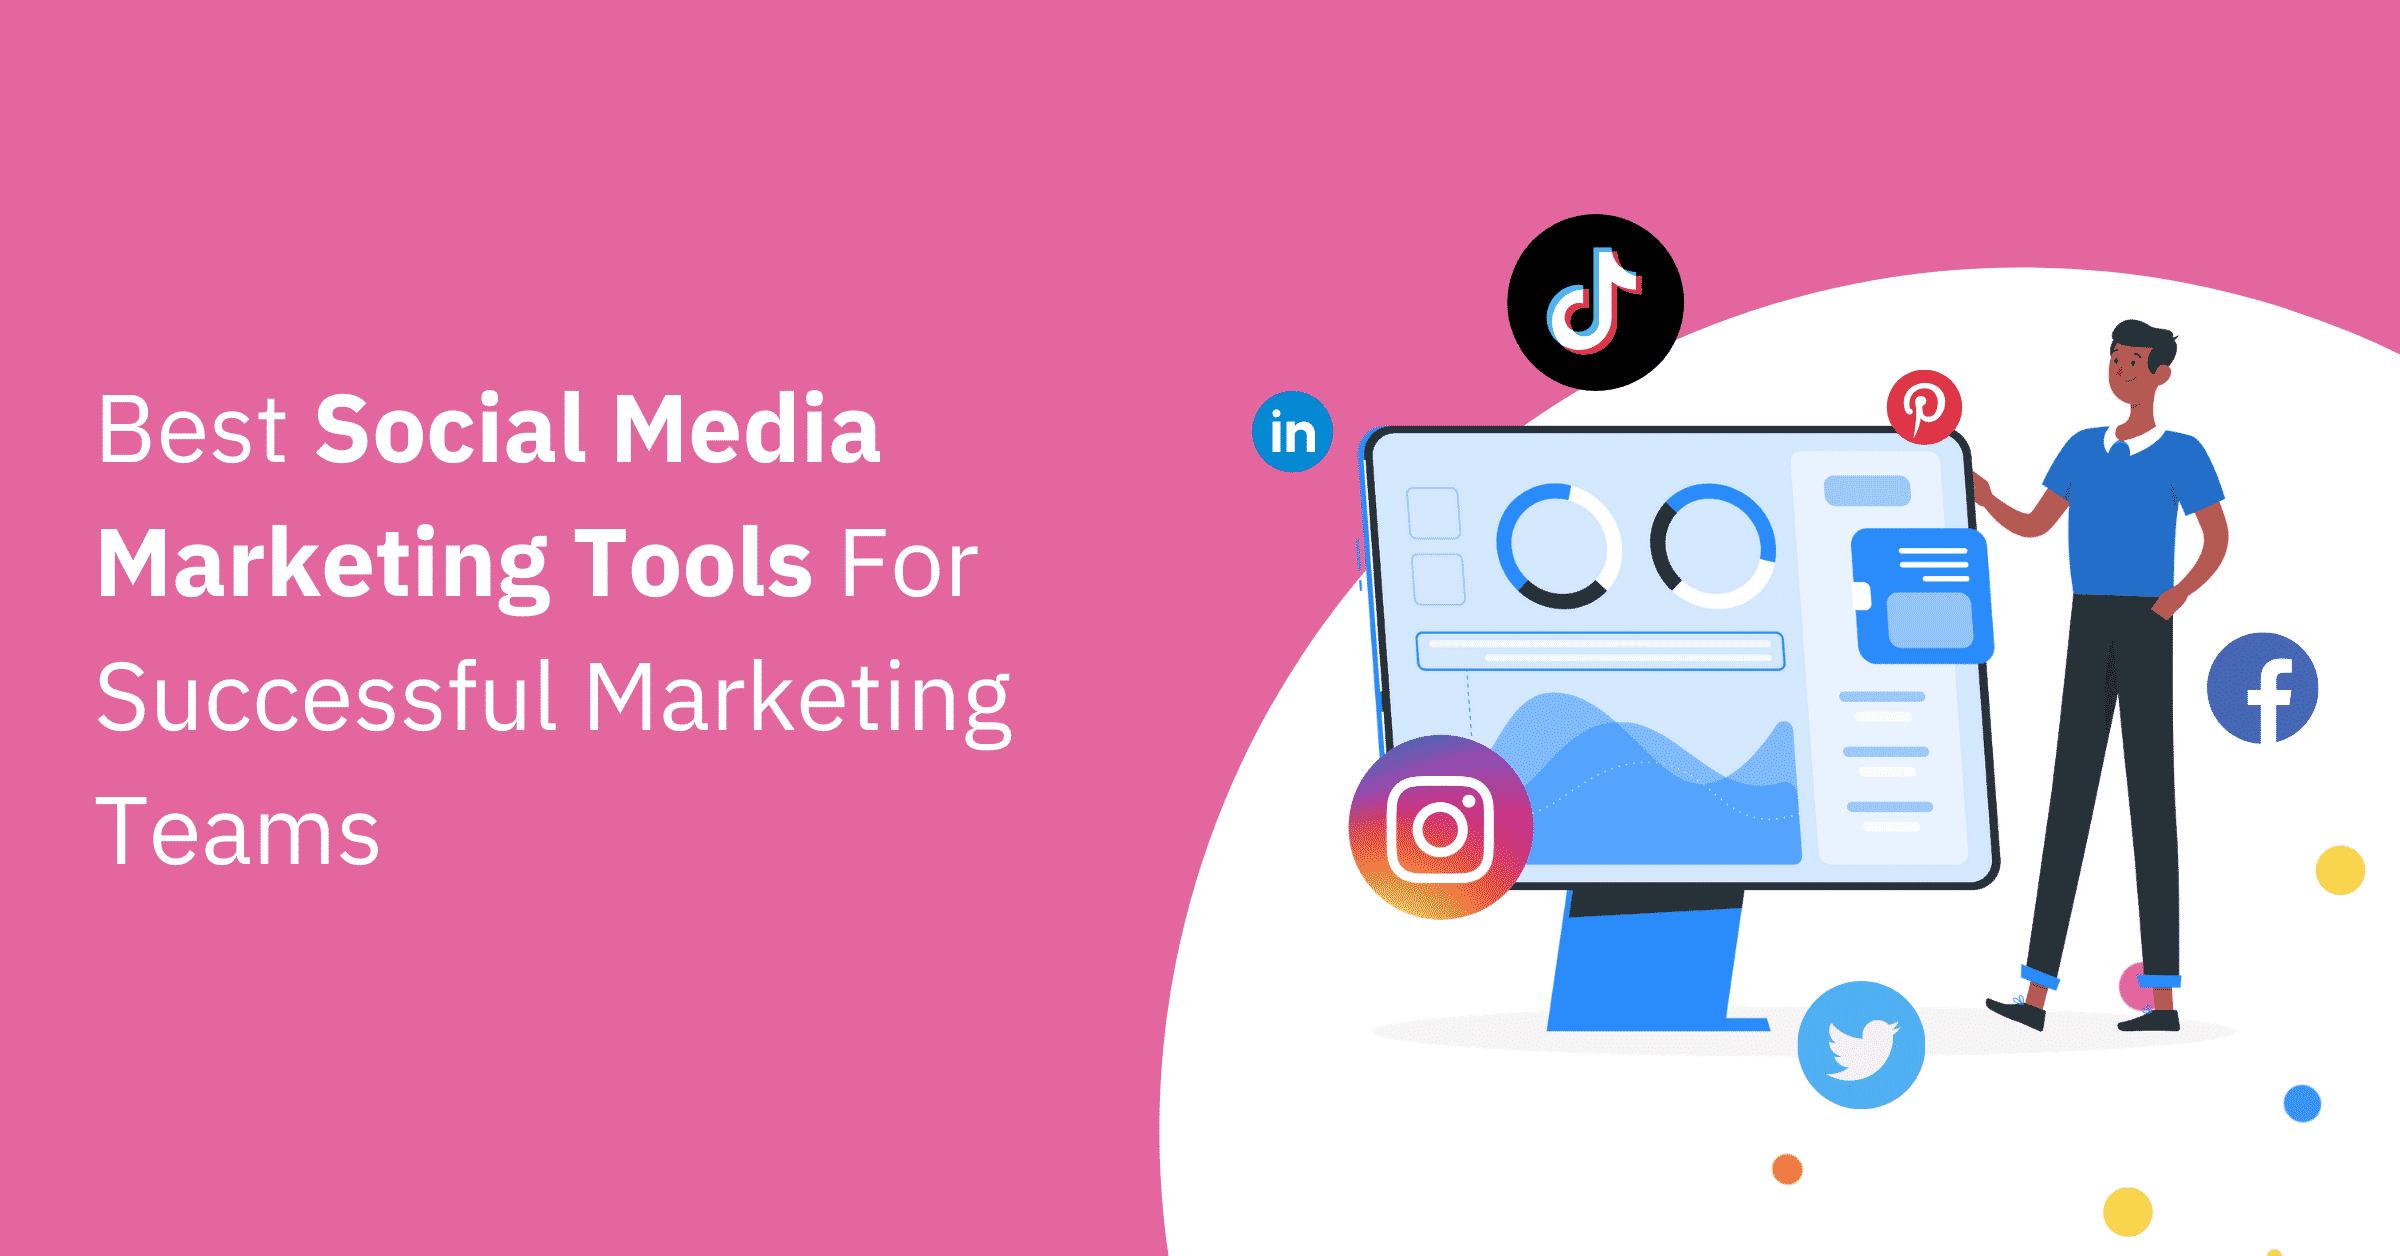 Best Social Media Marketing Tools Marketers Need To Use